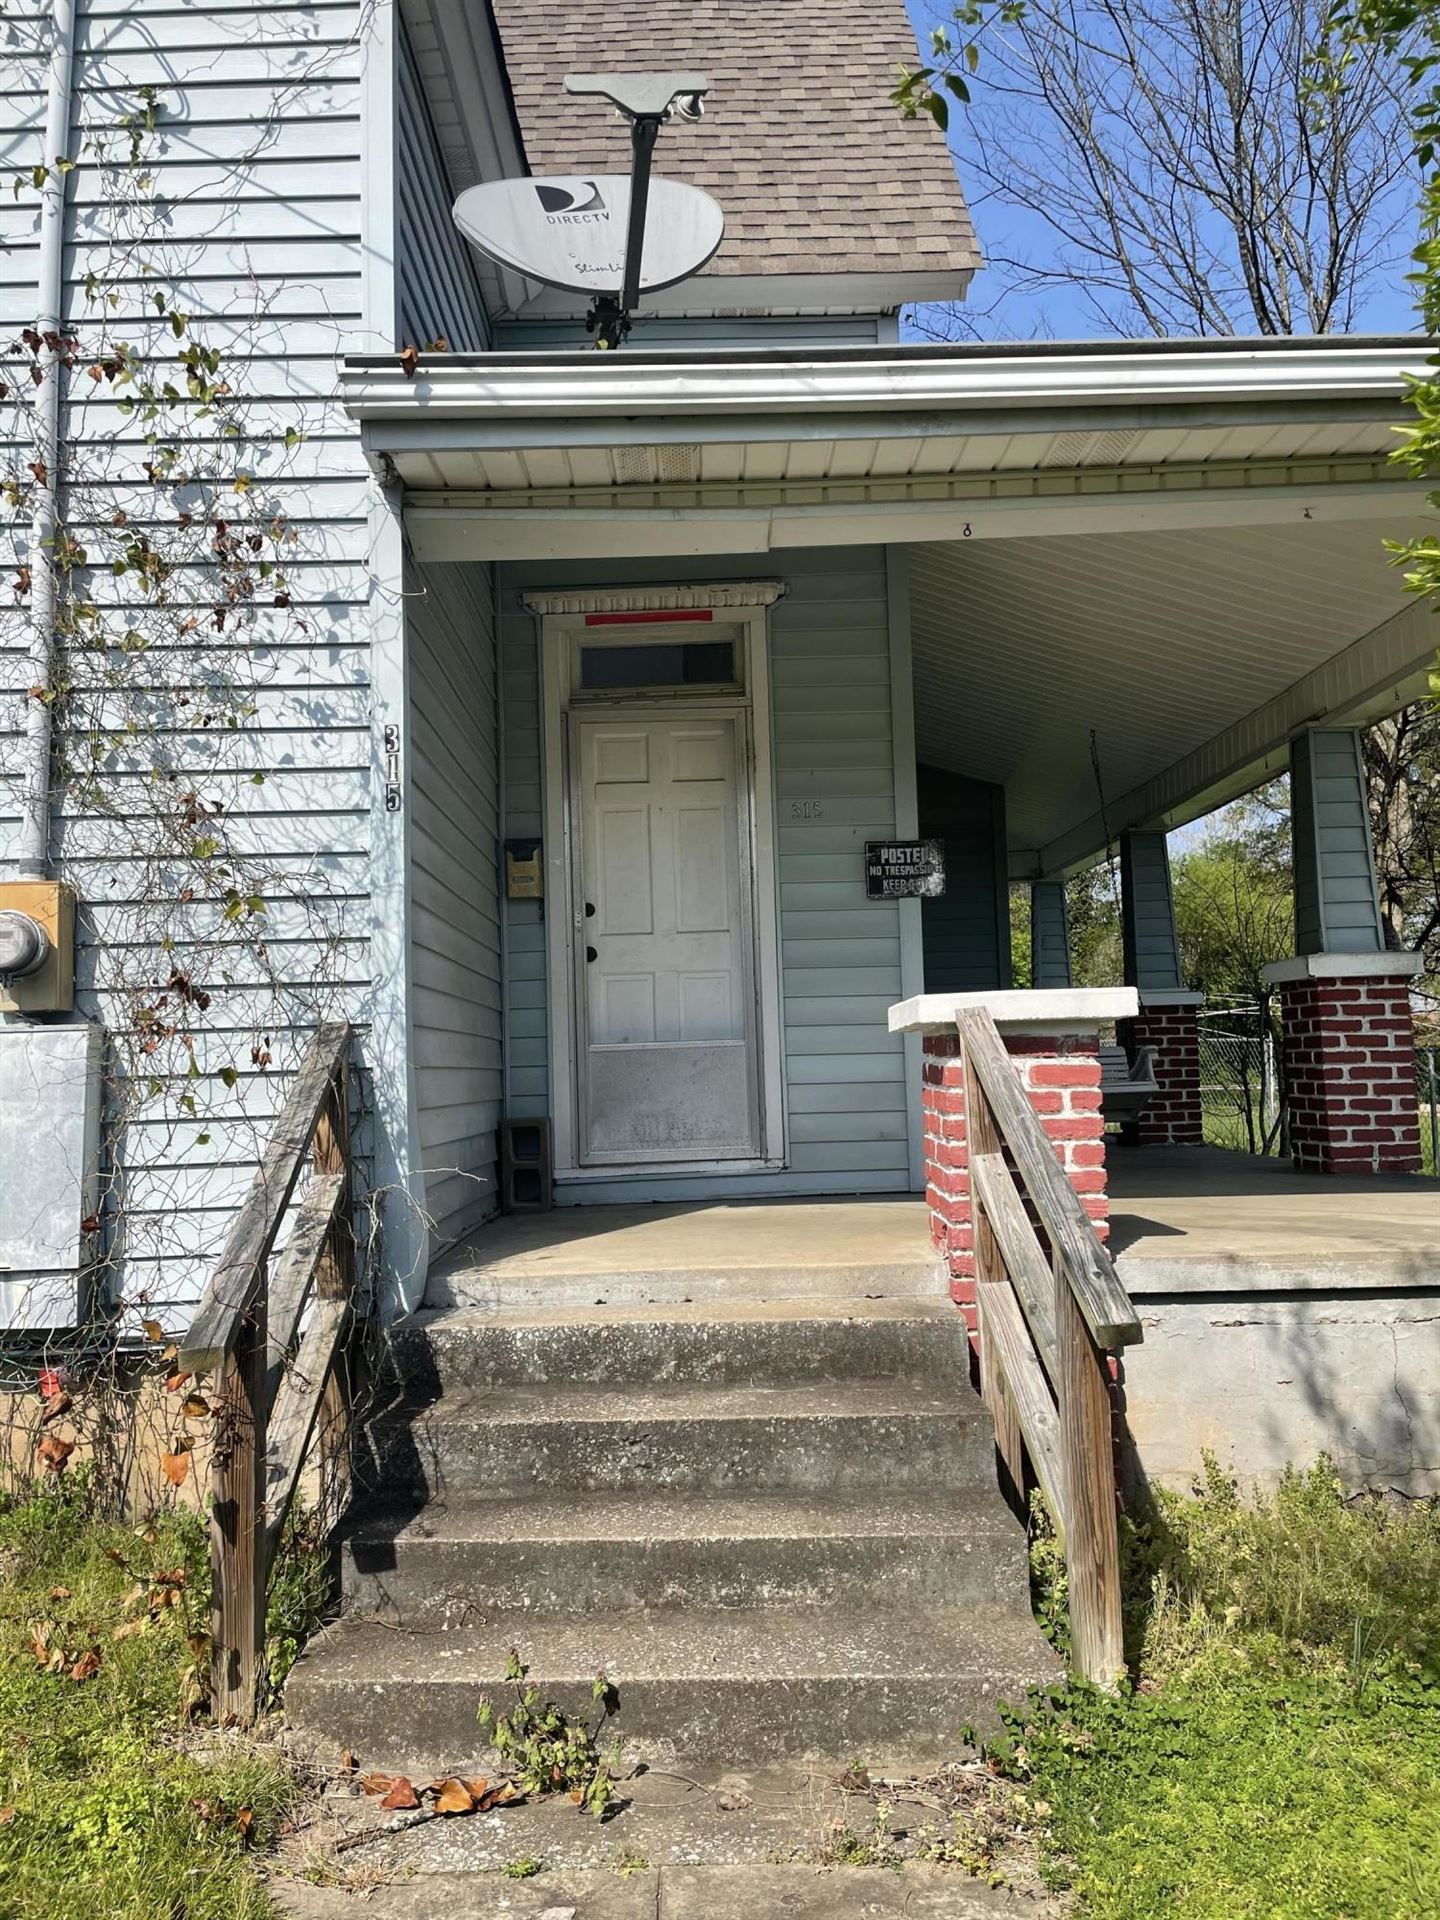 Photo of 315 W Broad St, Clinton, TN 37716 (MLS # 1148946)